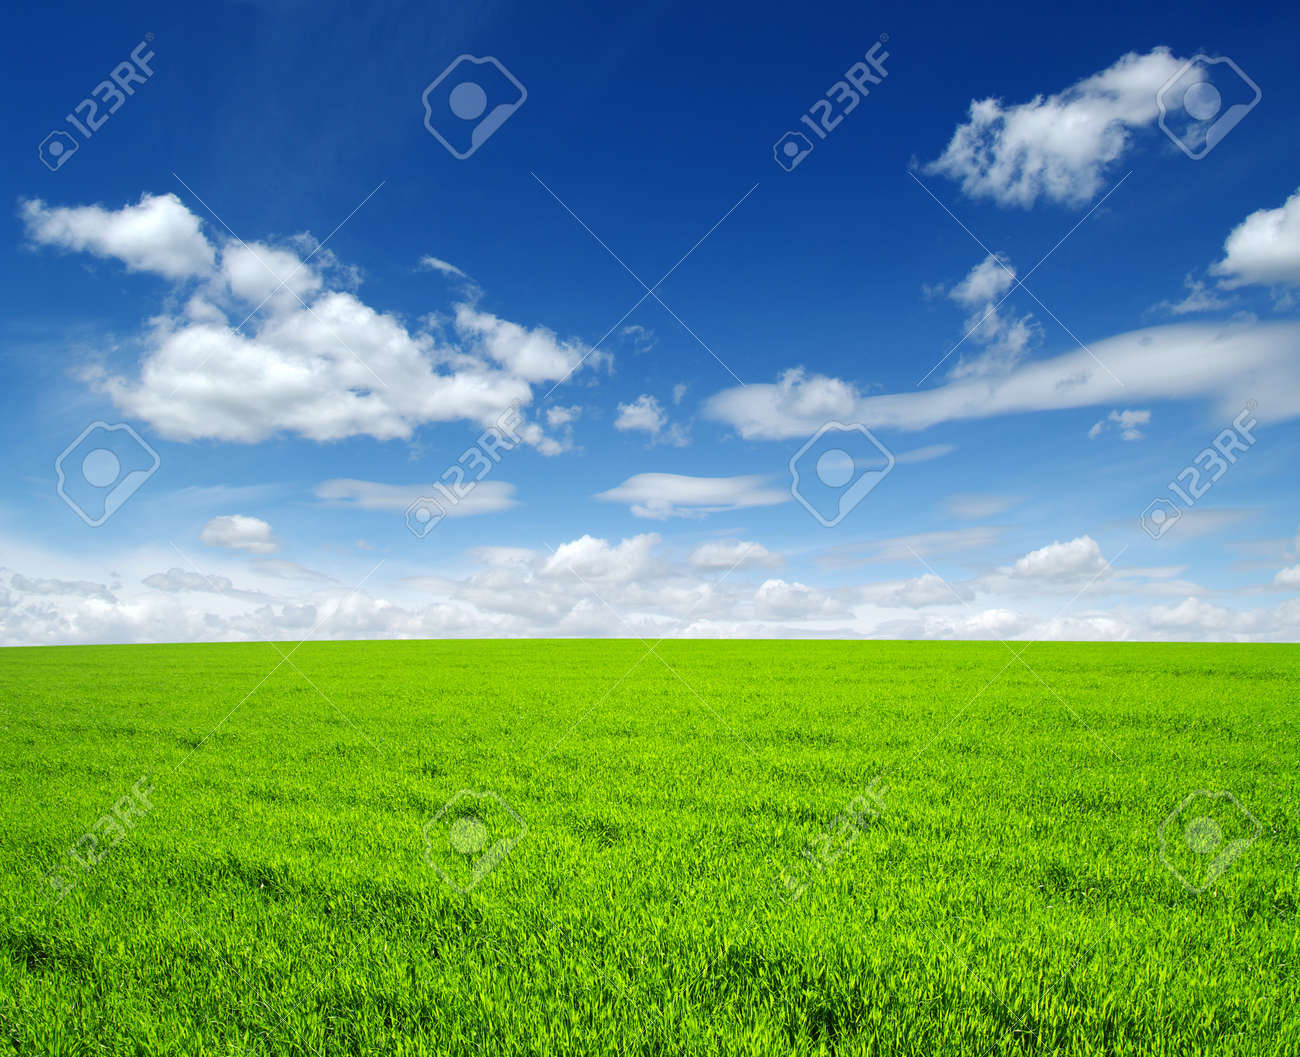 field of green grass and sky Banque d'images - 48653615